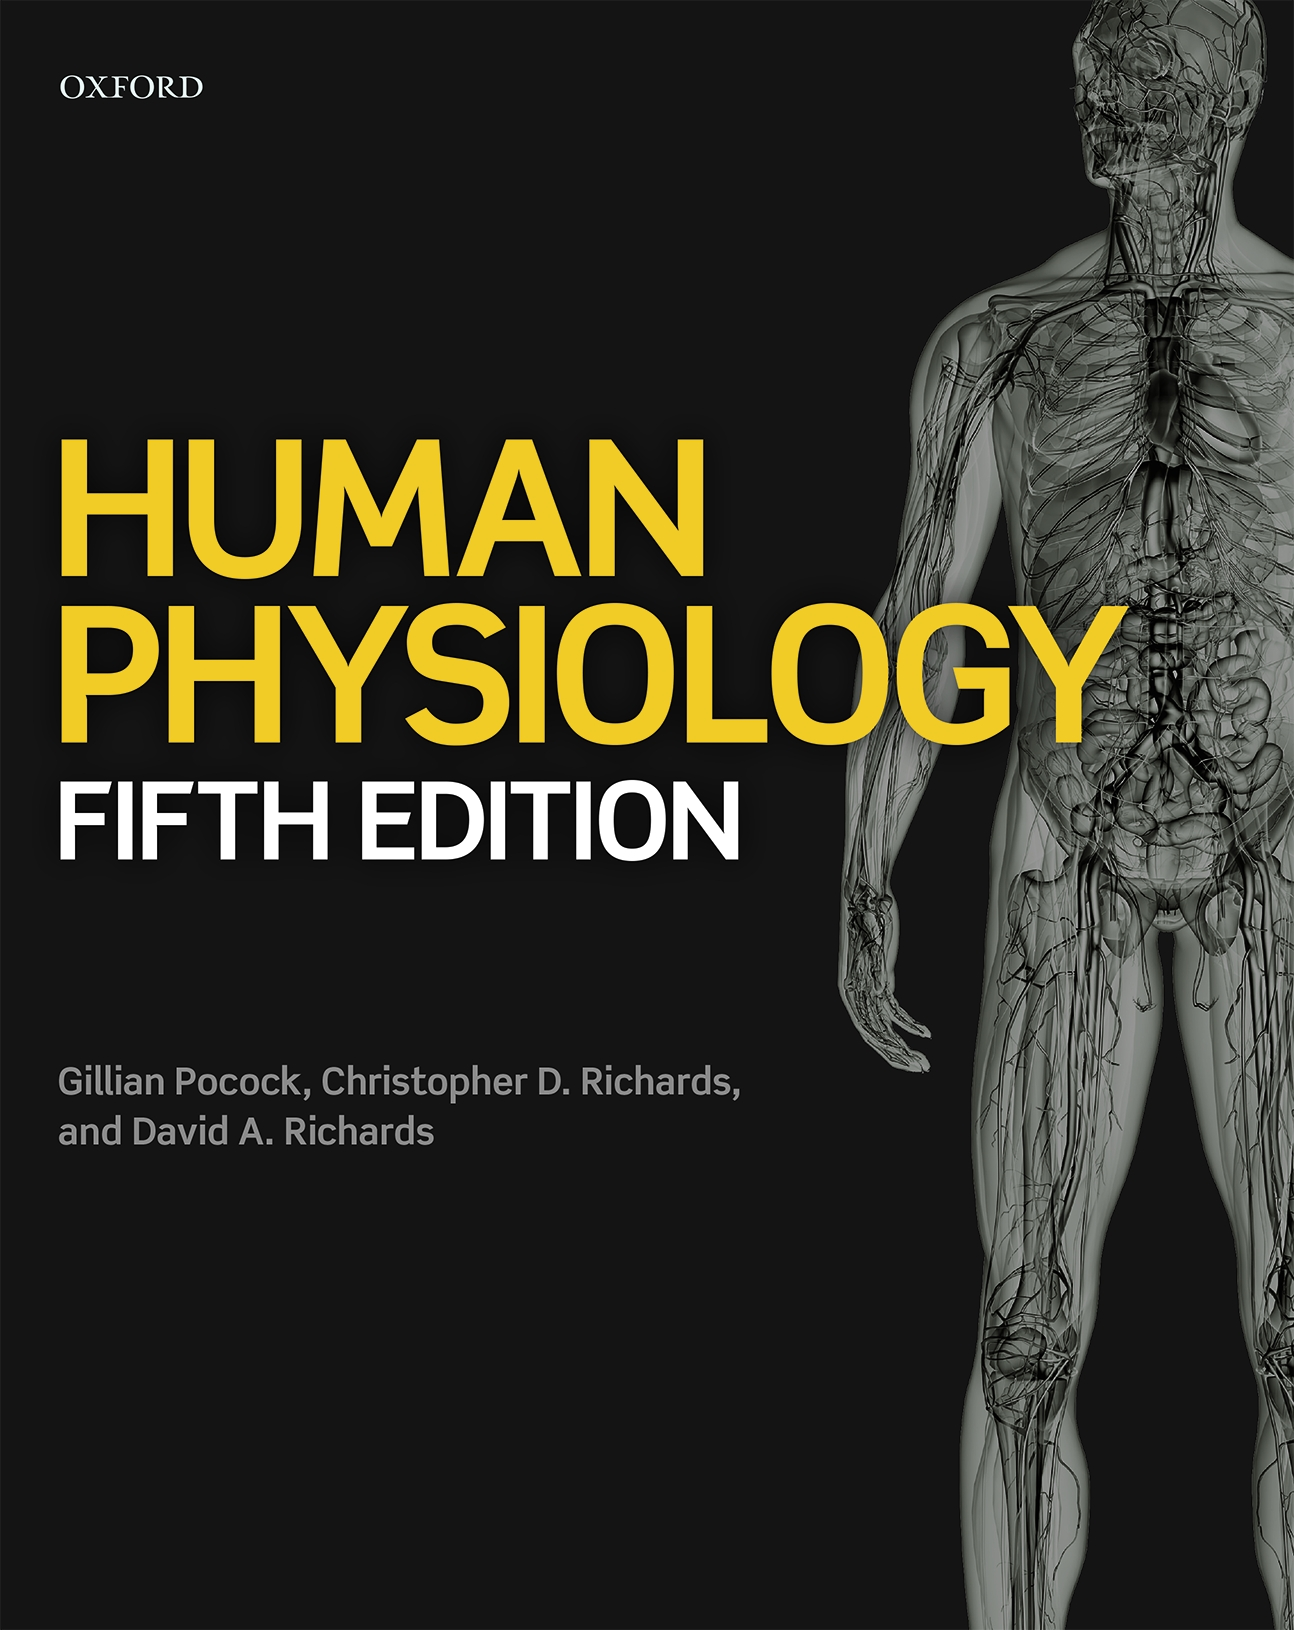 Human Physiology 5e - lecturer resources